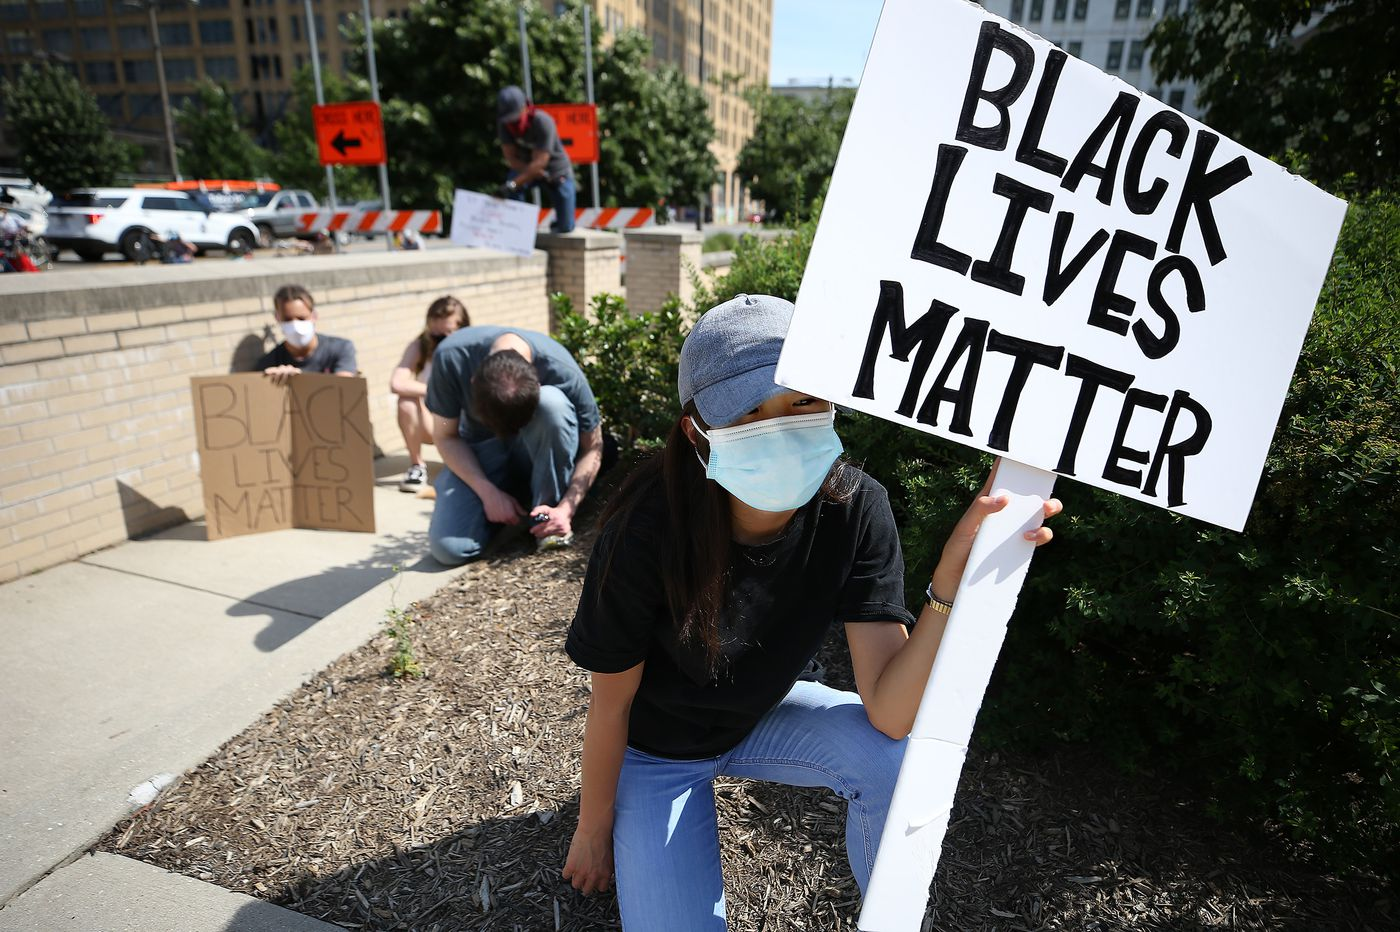 Hite: 'No justice, no peace,' as Philly educators march against racism